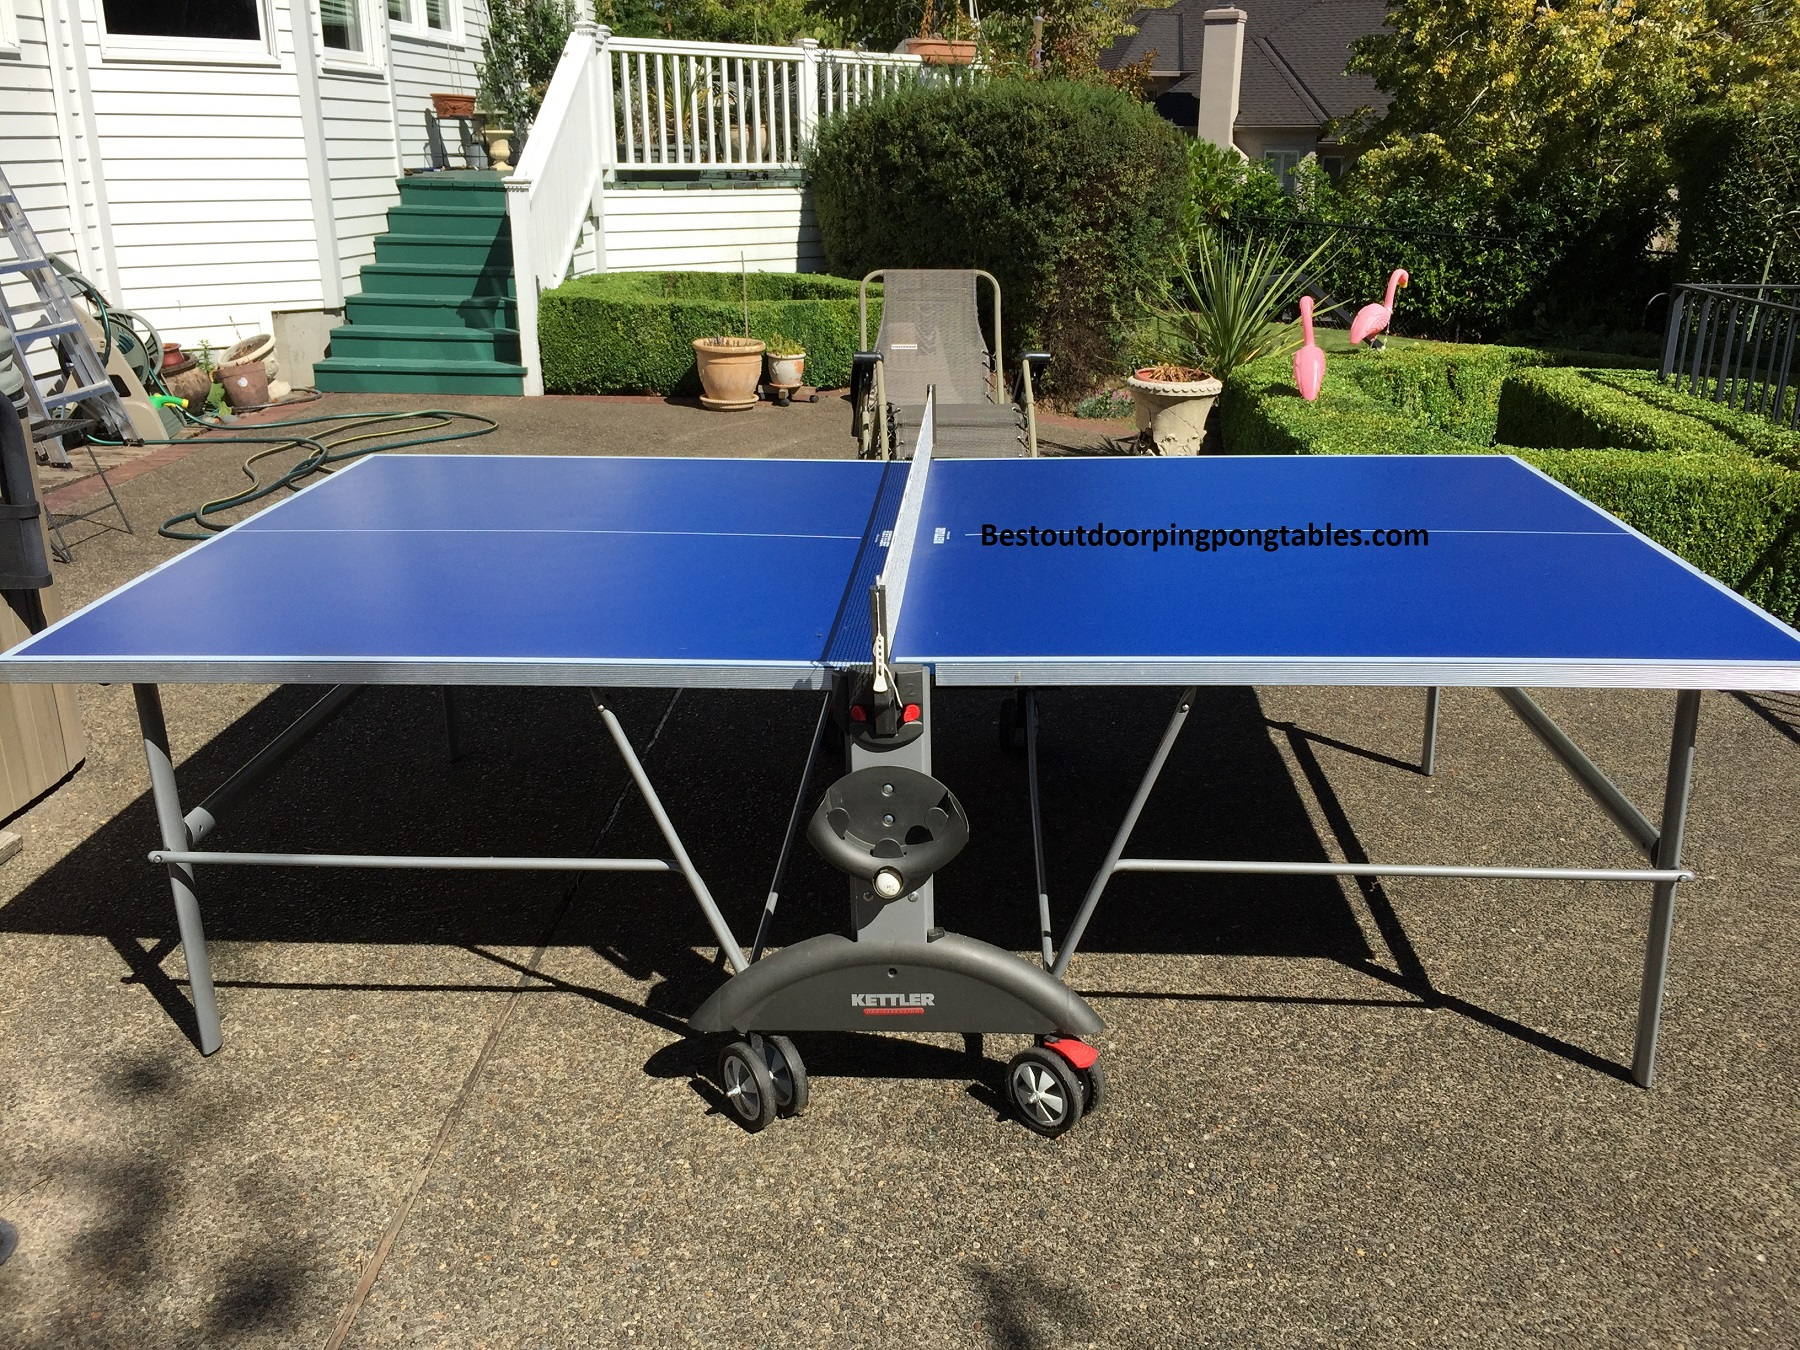 b2836b2d3 Kettler Outdoor Table Tennis Axos 1 With Accessory. Kettler Topstar Xl  Outdoor. Kettler Top Star Xl Review